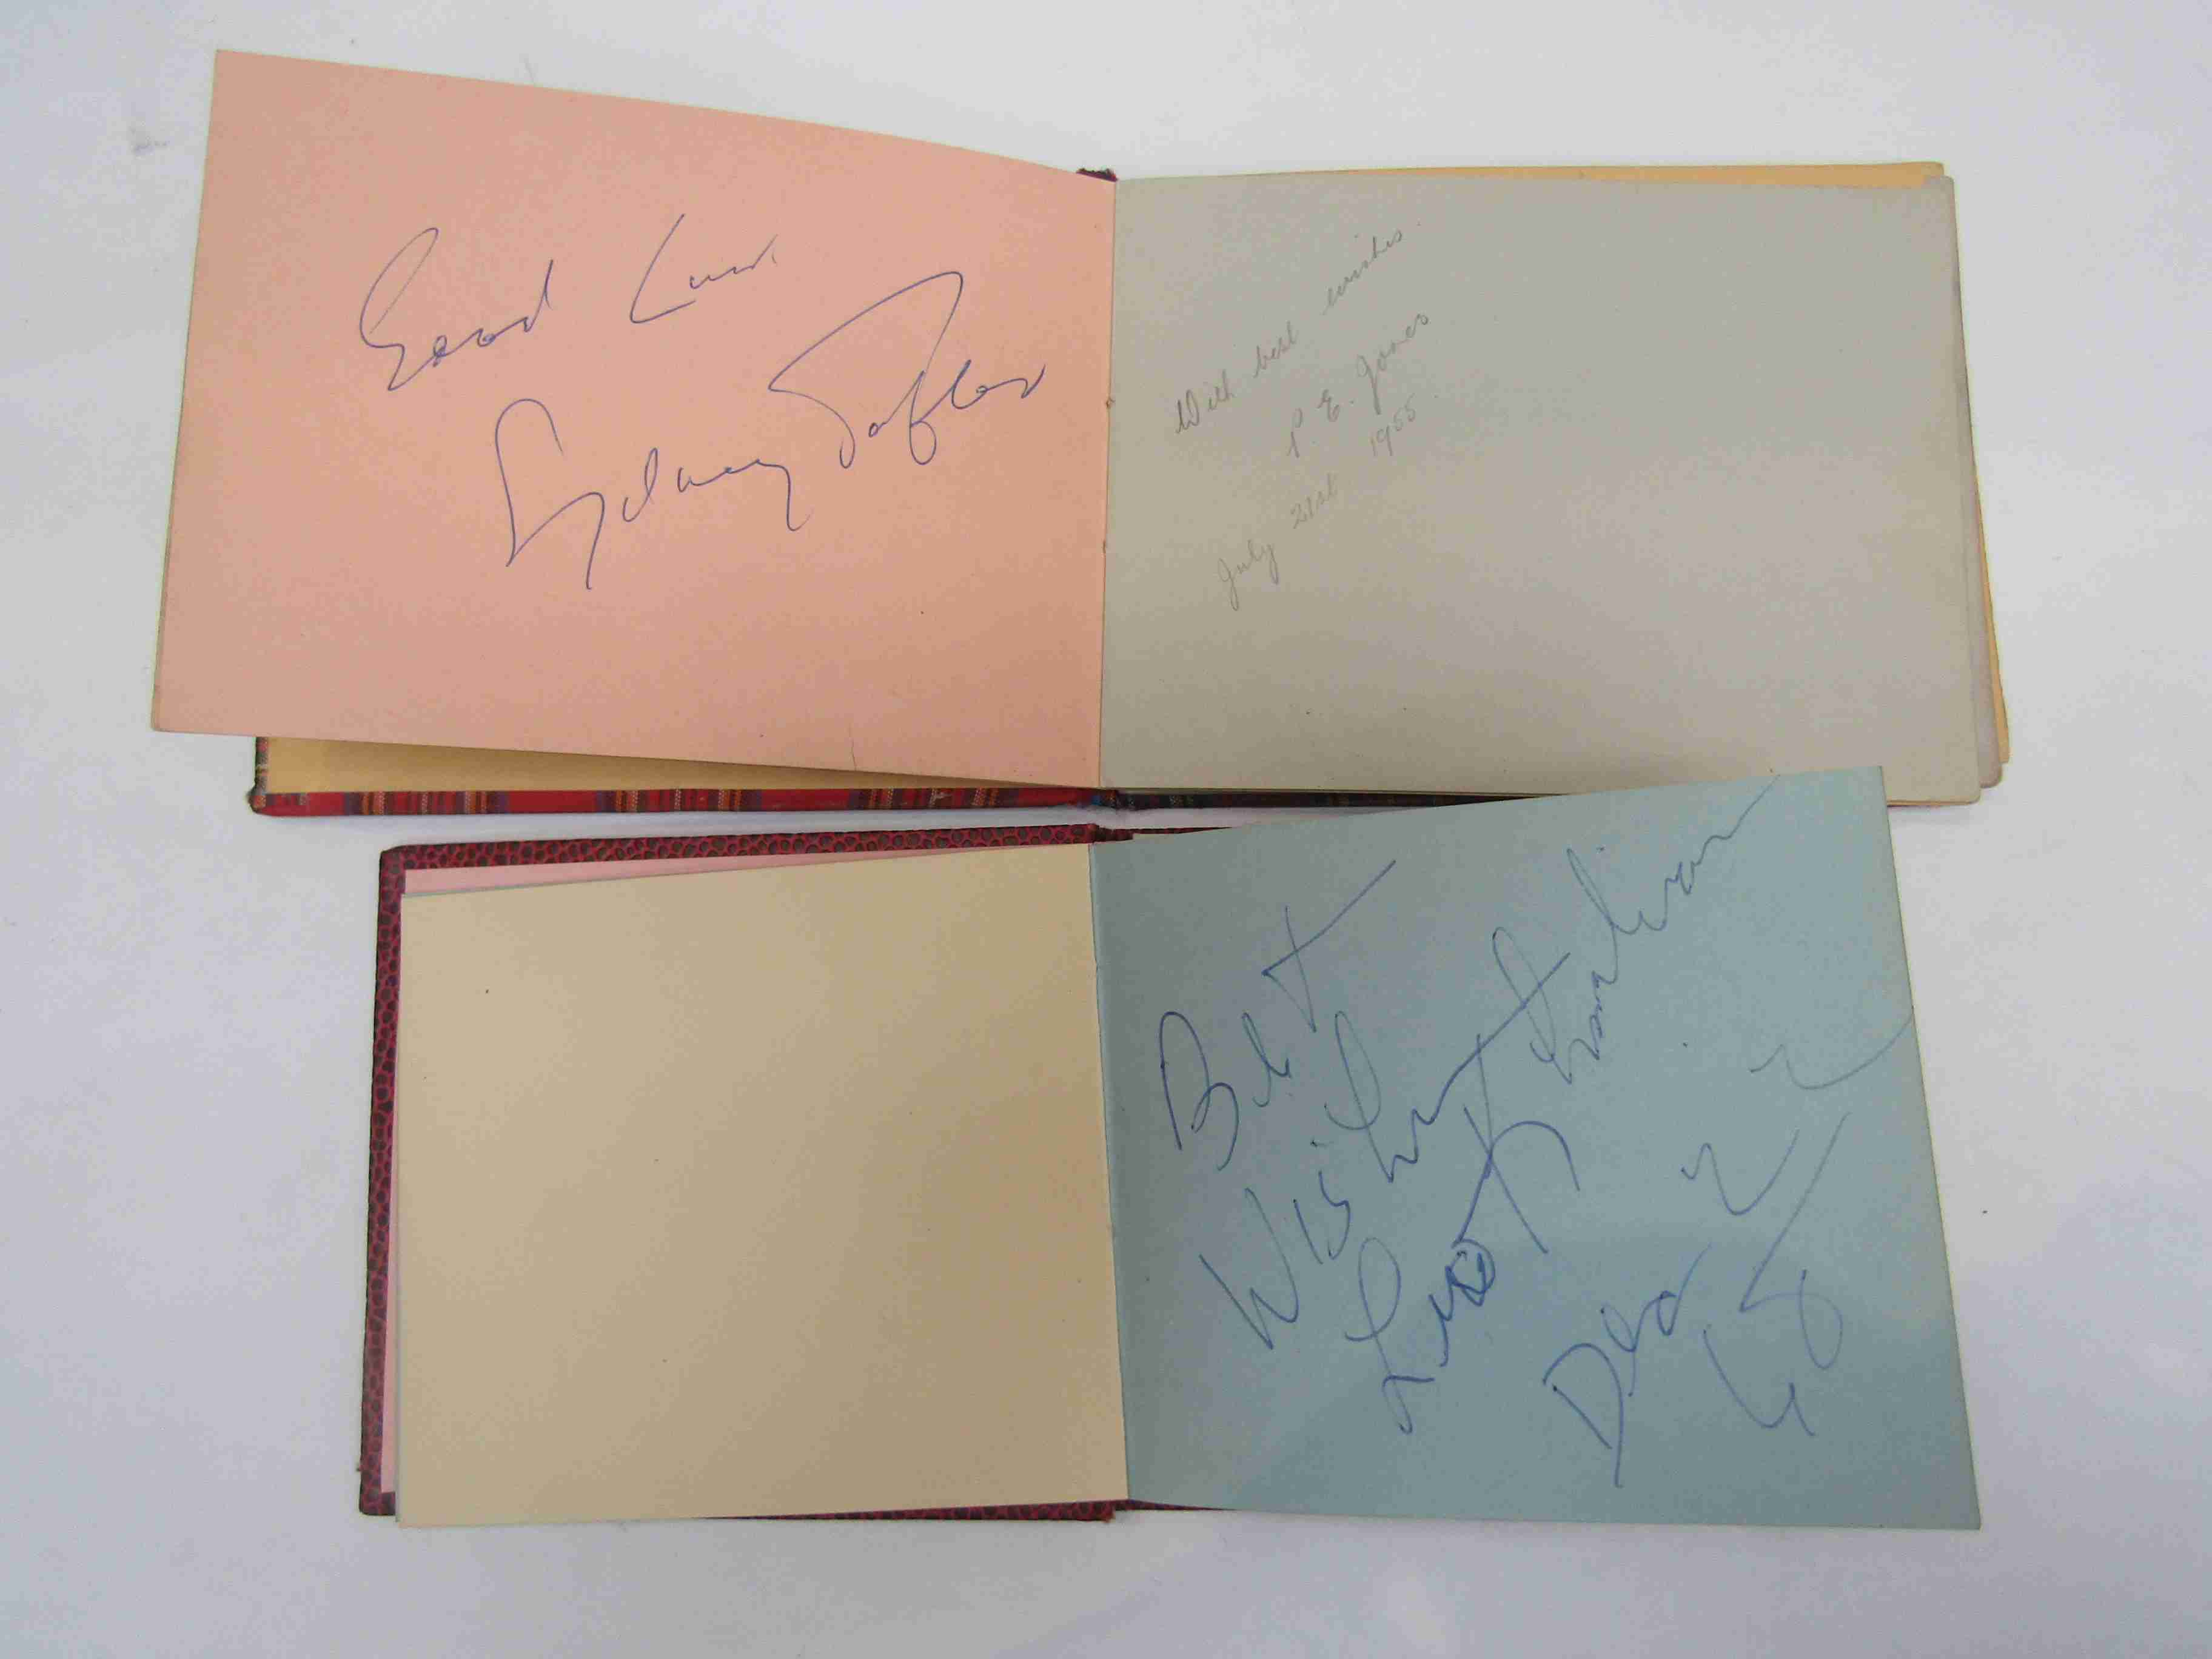 Two 1950s/60s autograph books containing autographs by Benny Hill, Honor Blackman, Barbara Shelley, - Image 10 of 34